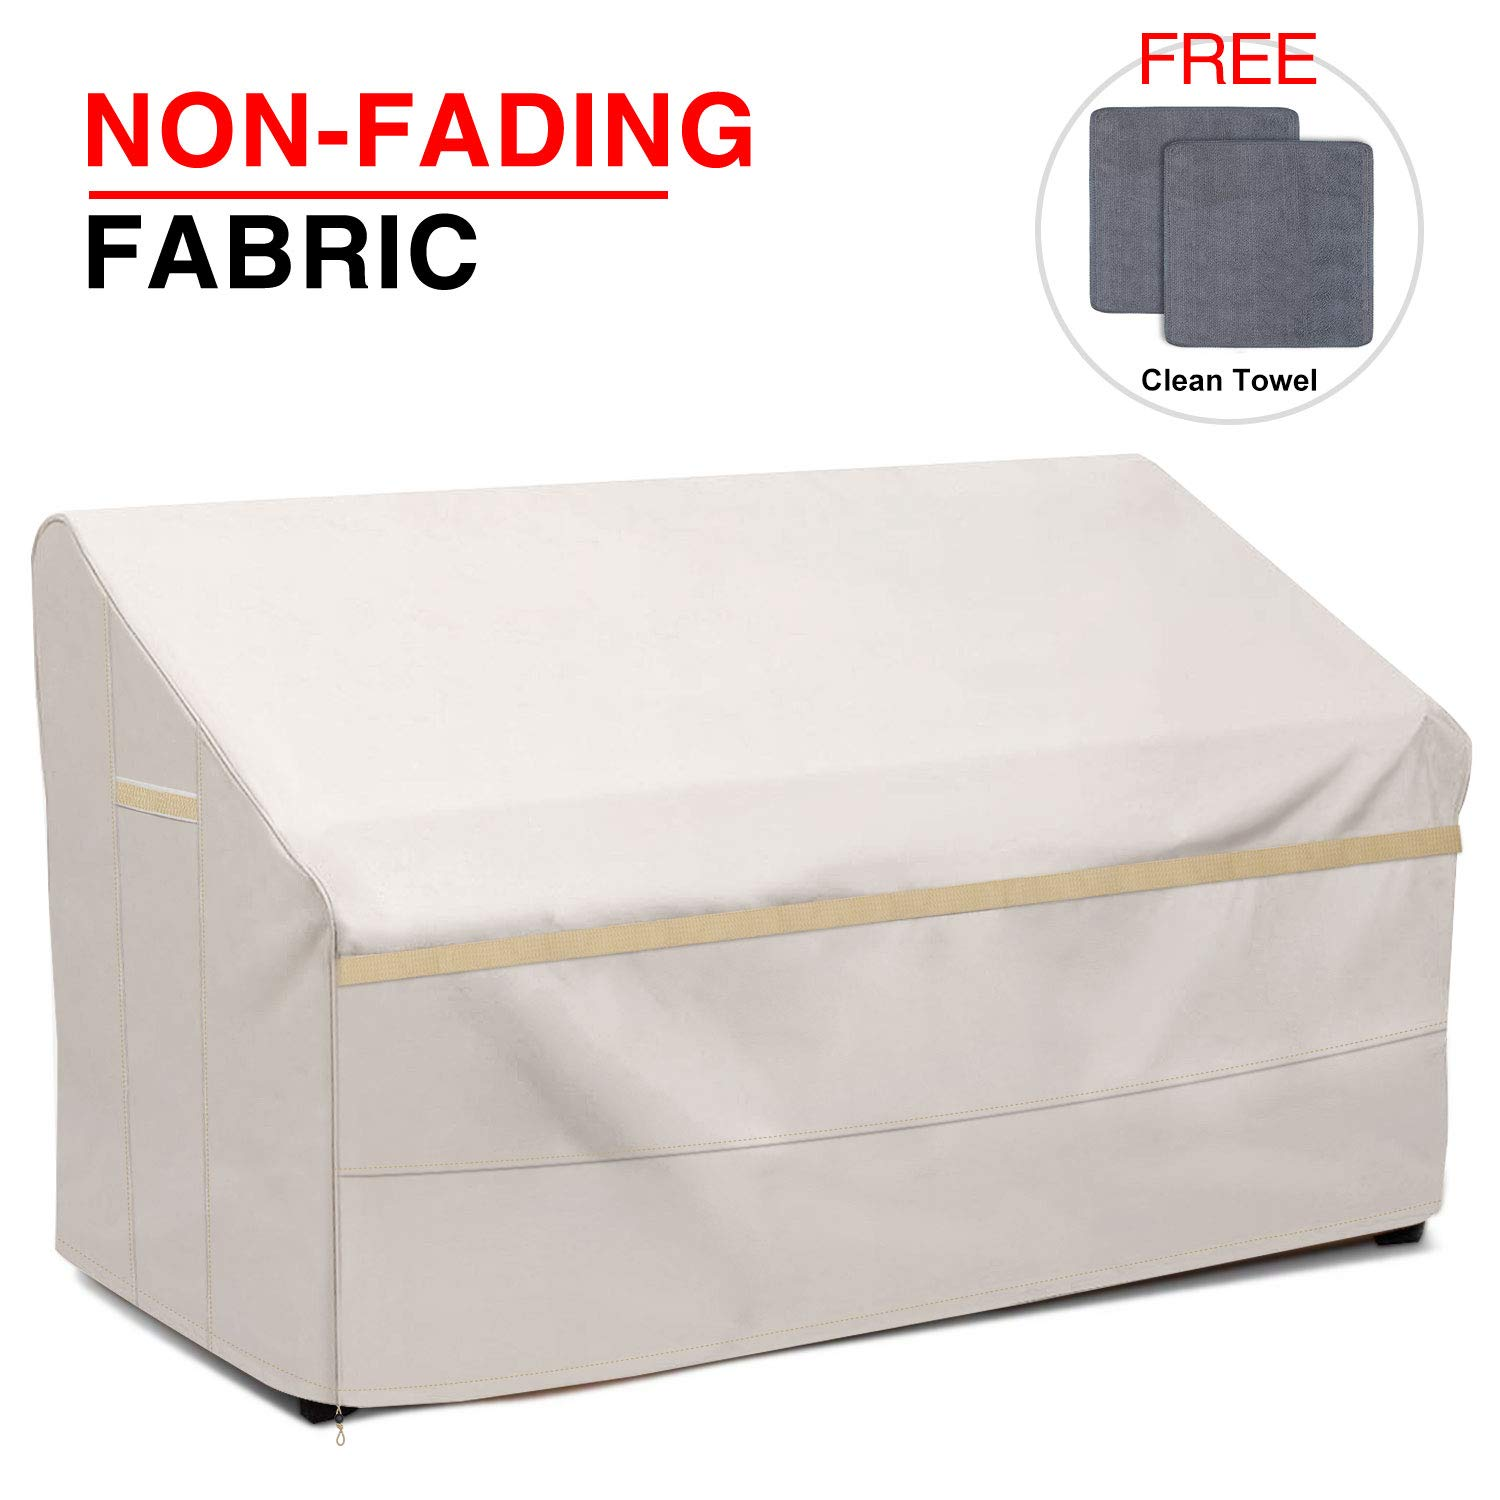 Patiassy 100% Waterproof Patio Deep Seat Sofa/Loveseat Cover 60'' W x 35'' D x 32'' H - Heavy Duty 3 Layer Ripstop Outdoor Furniture Covers with Free 2 PCS Towels, 5 Years Warranty